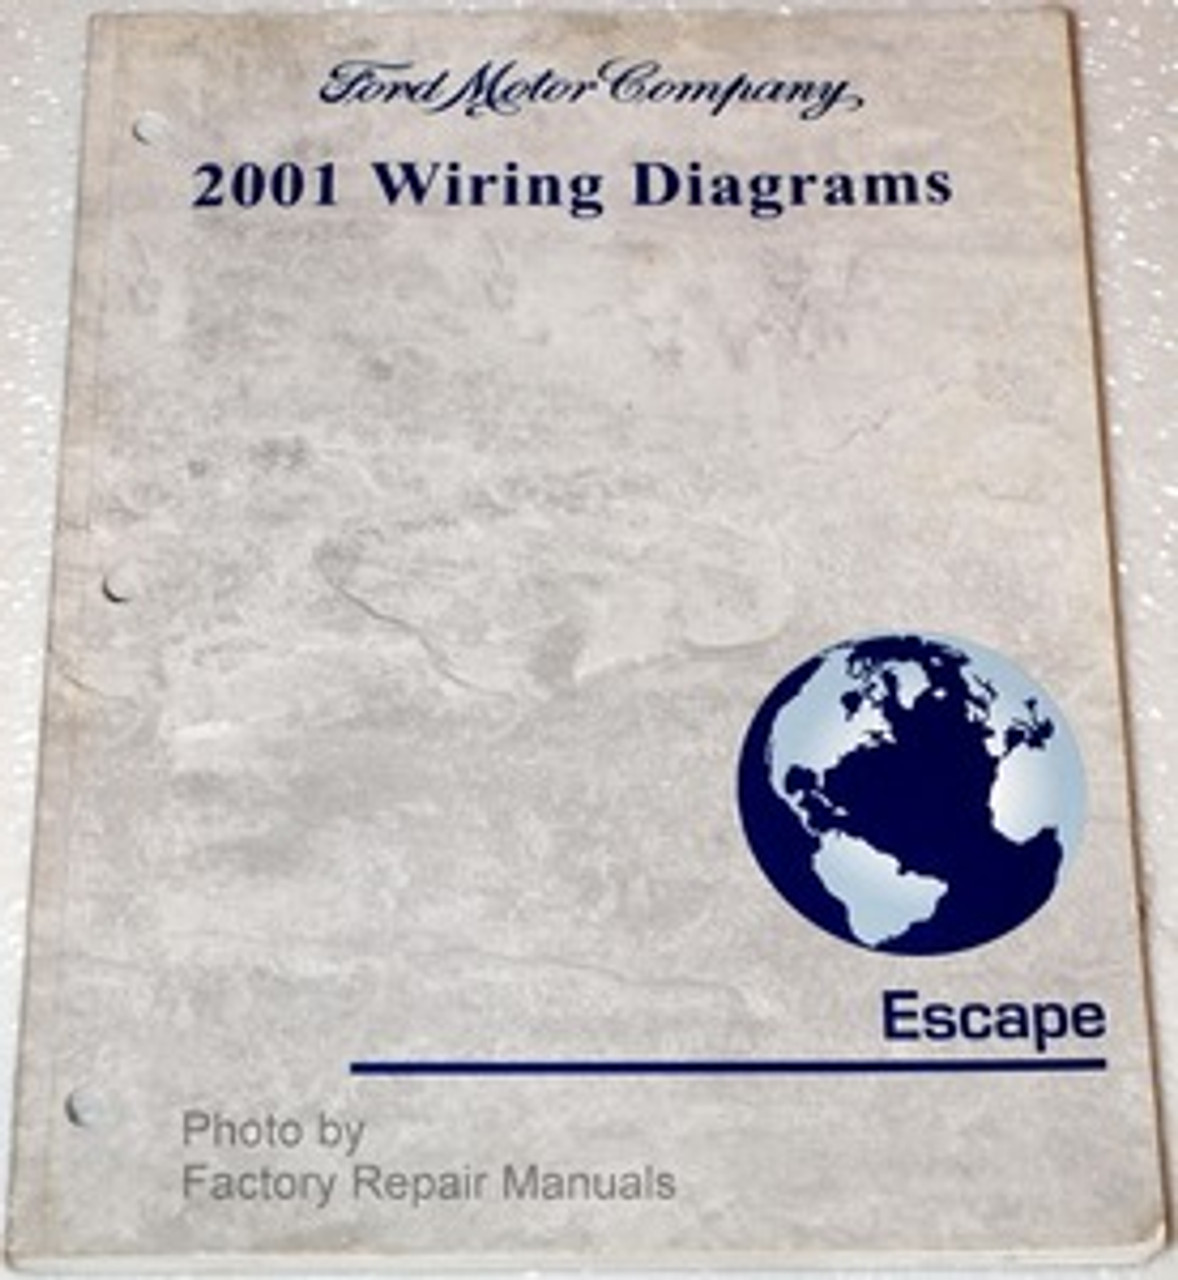 2001 Ford Escape Electrical Wiring Diagrams Original